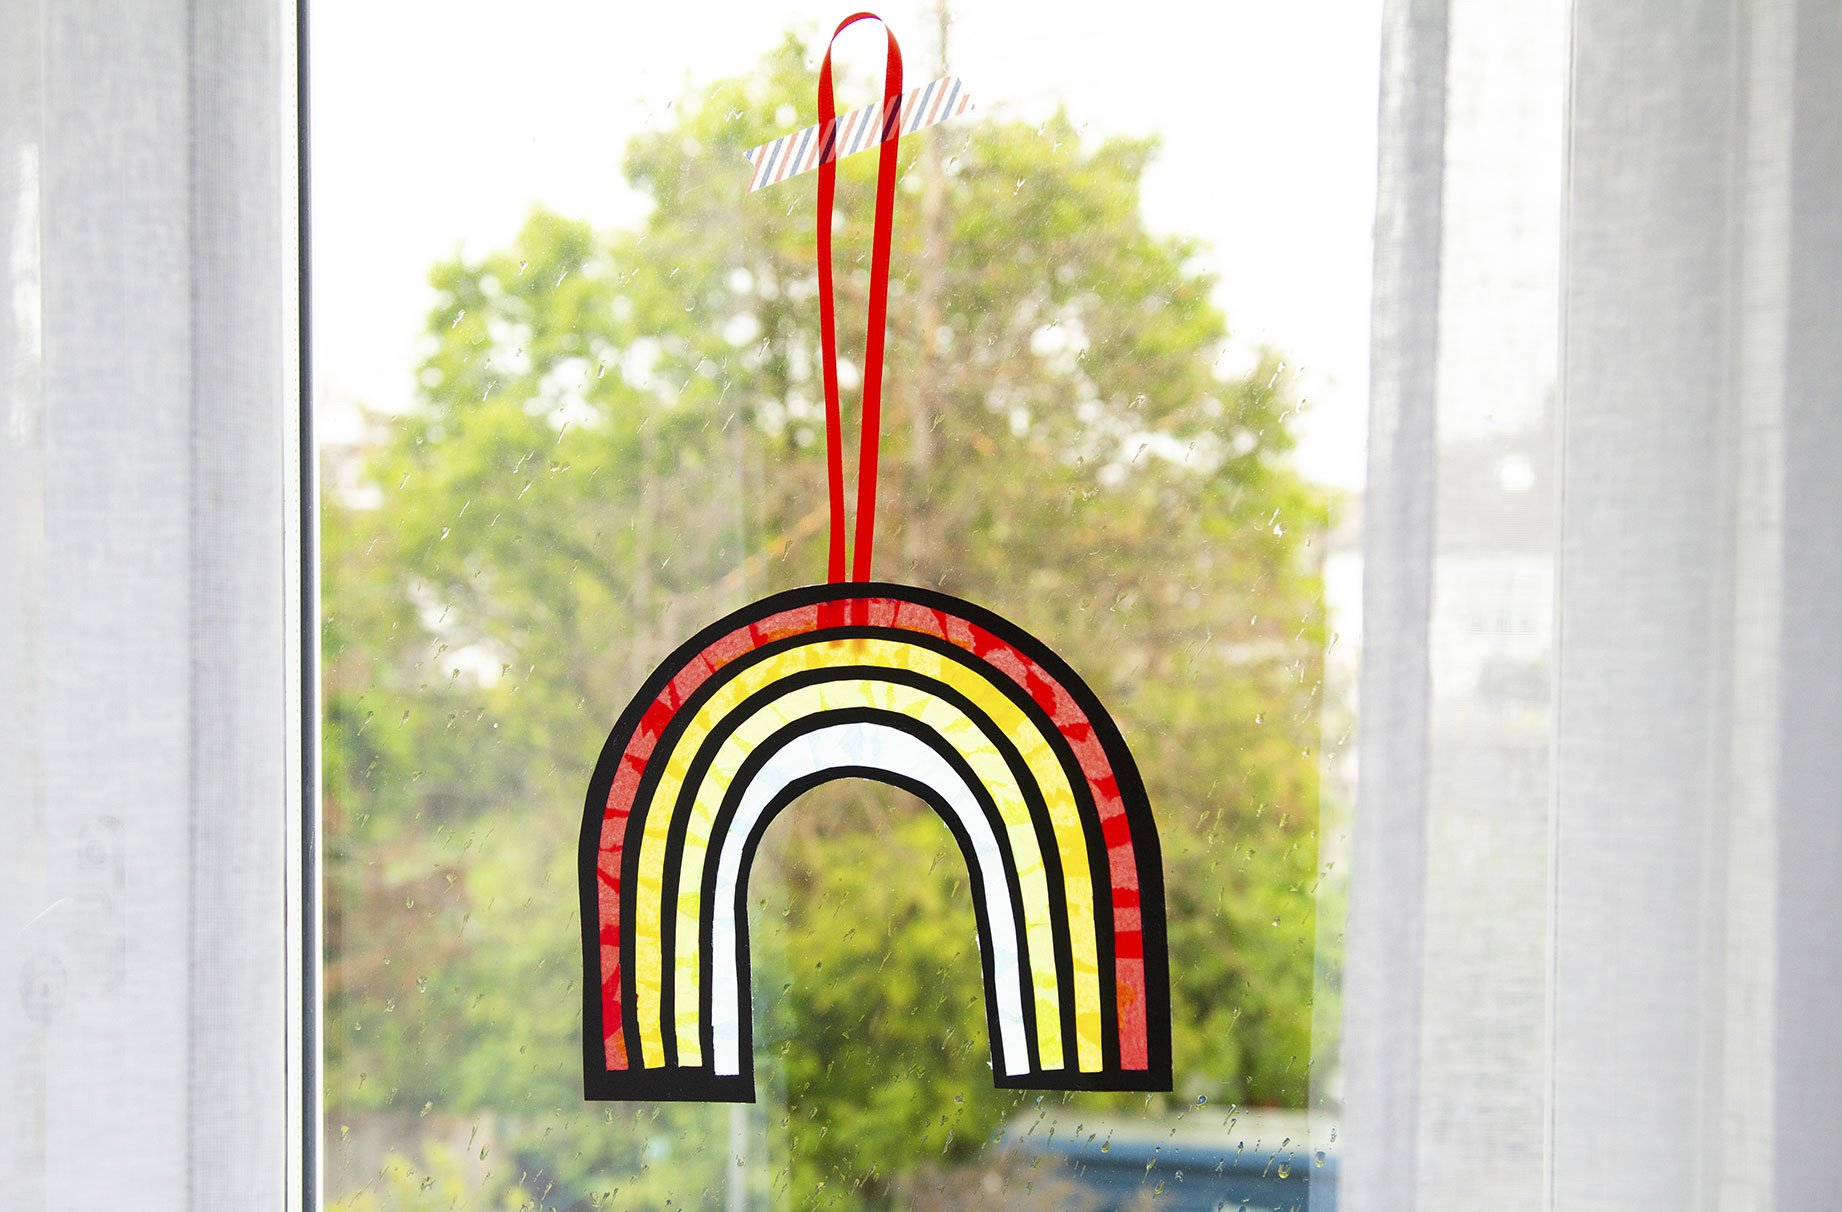 How to make an easy sun catcher